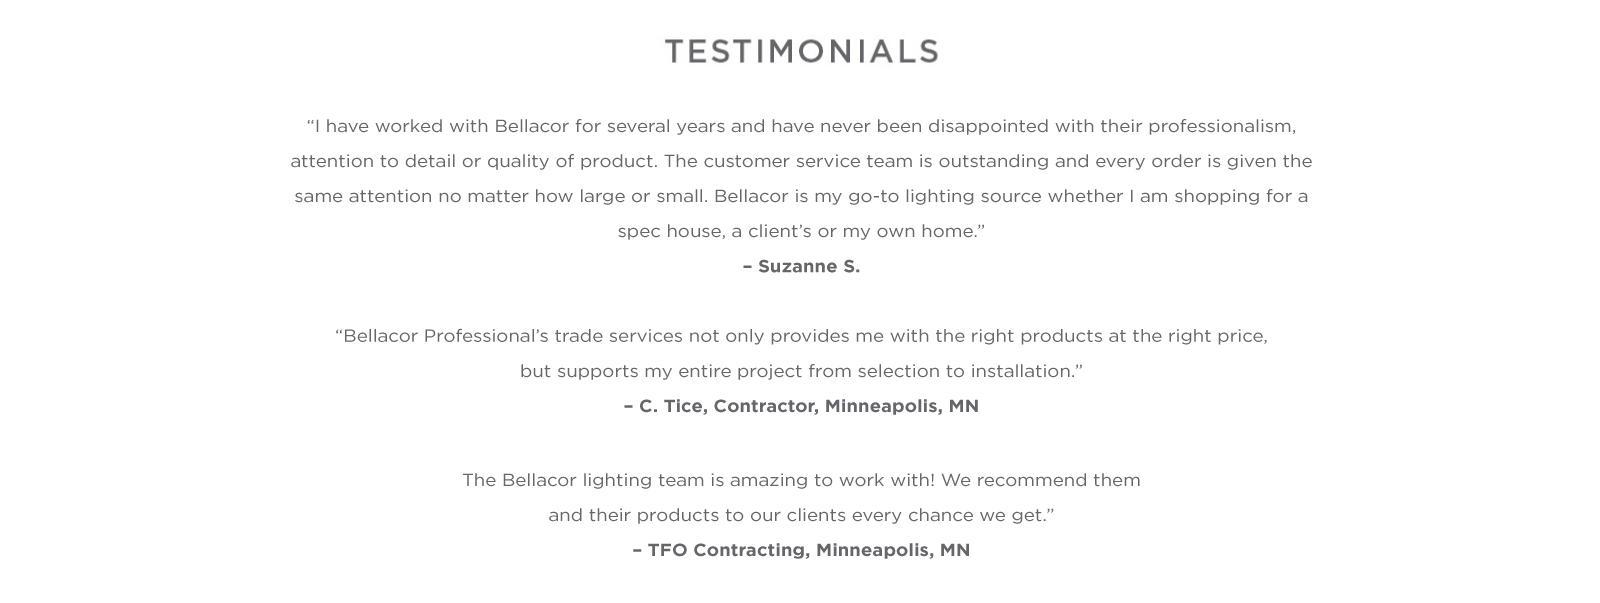 Bellacor Pro Advantage: We Help Pros Find What They Need